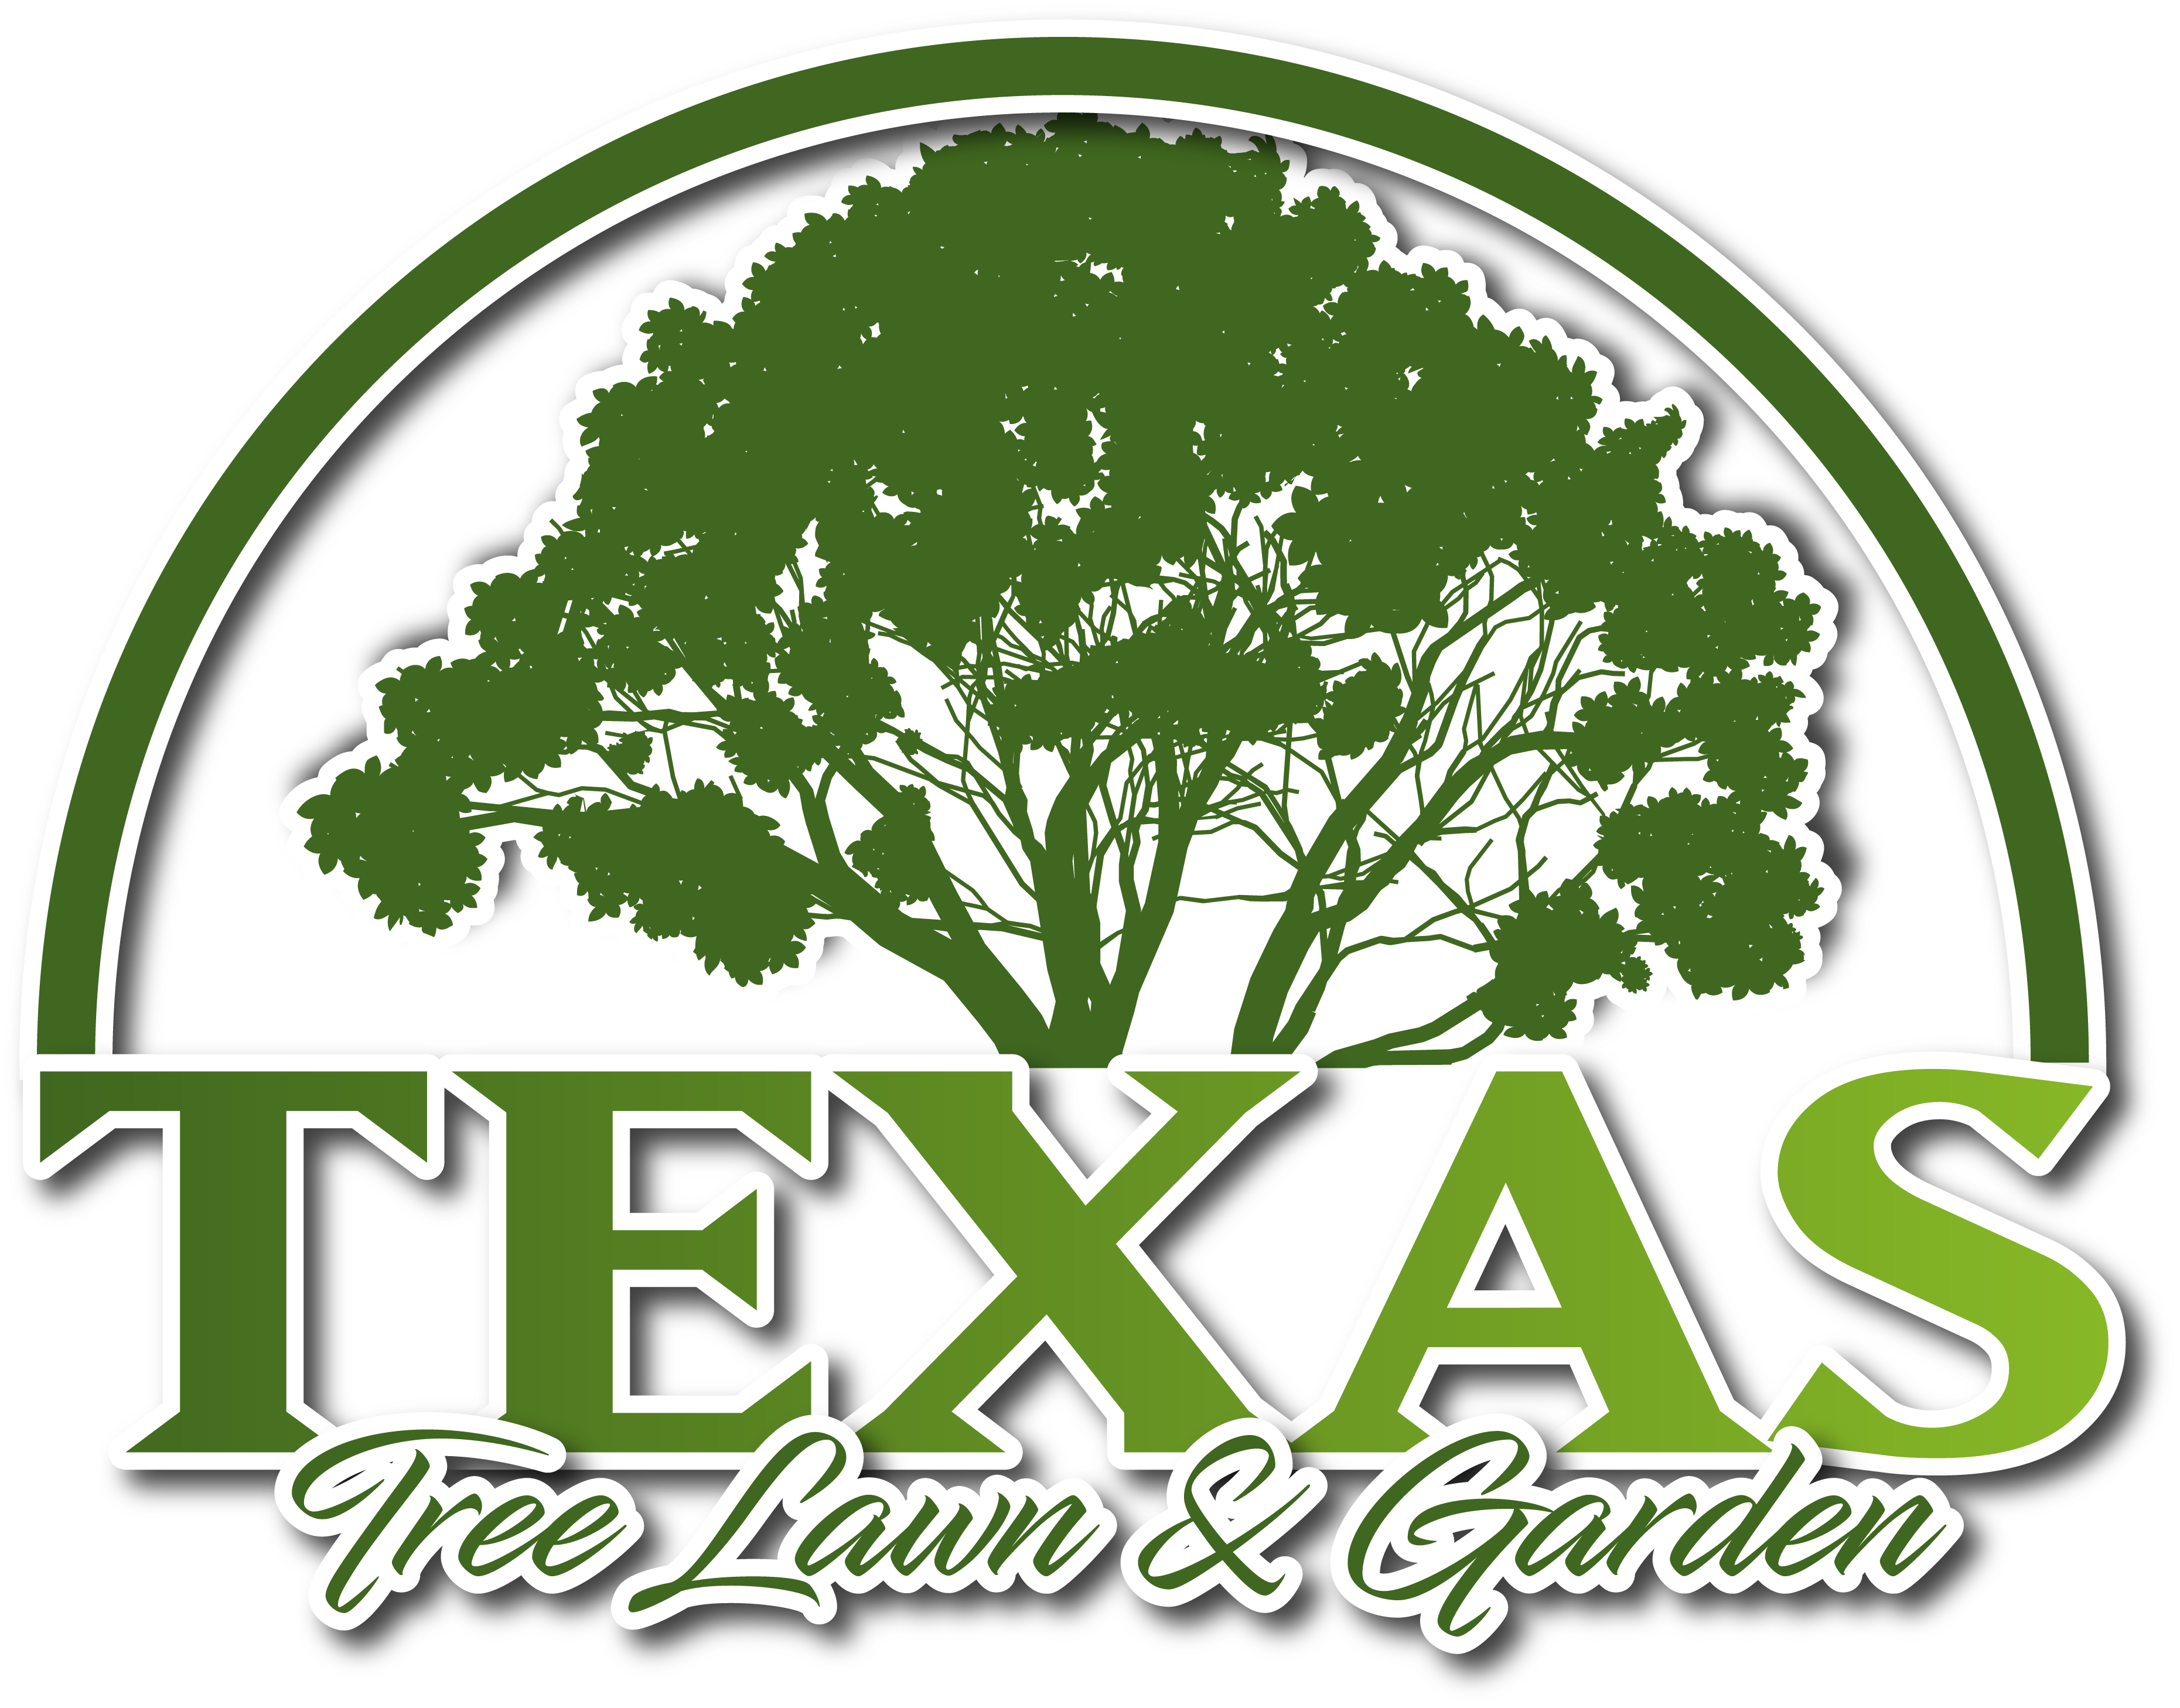 Texas Tree Lawn & Garden Is Now the Top Rated Corpus Christi Tree Service